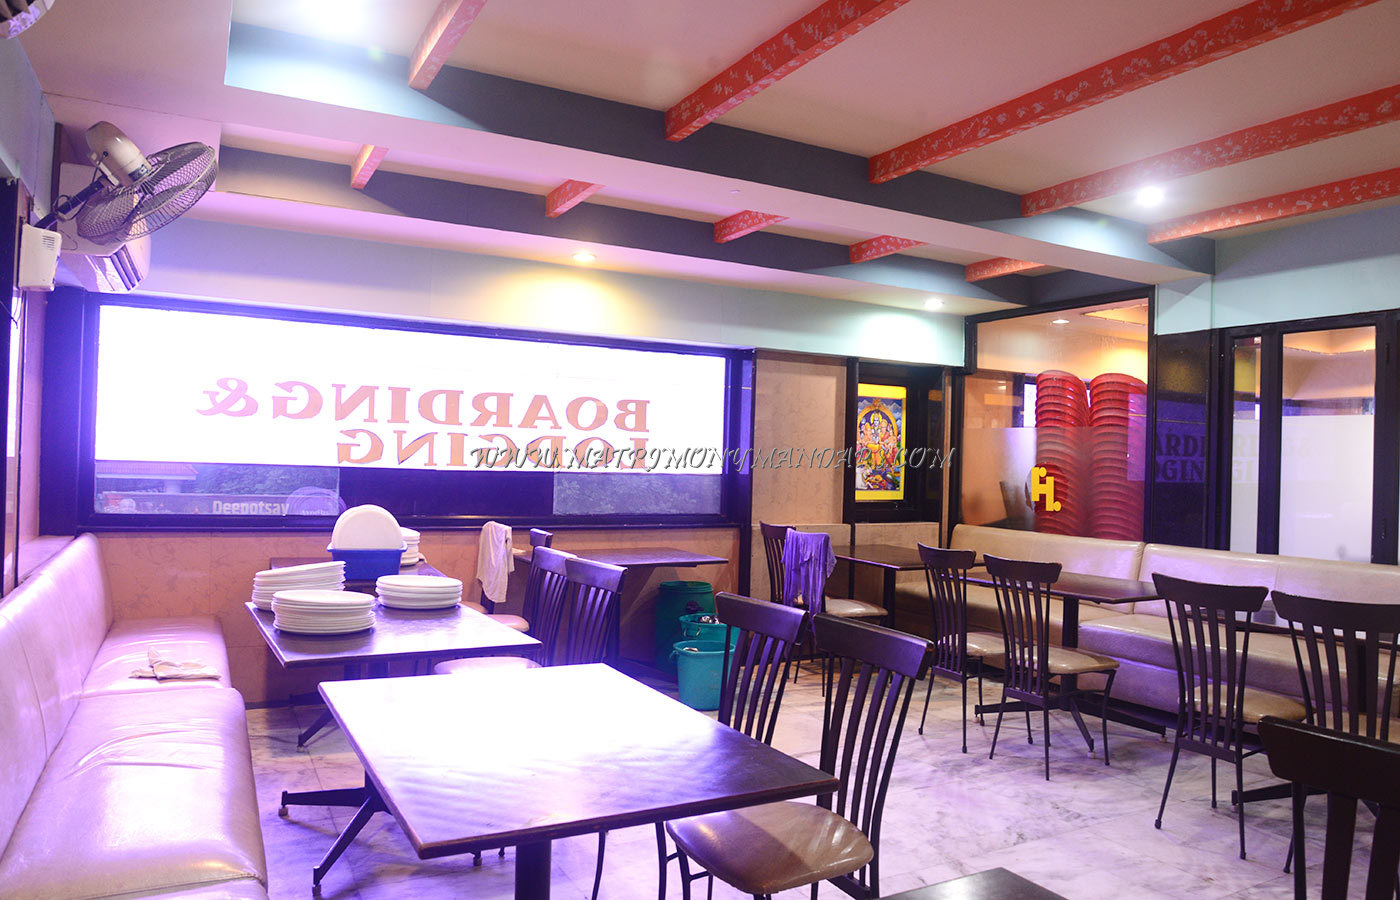 Find the availability of the Hotel Raaj Bhaavan Golden Hall (A/C) in Purasawalkam, Chennai and avail special offers